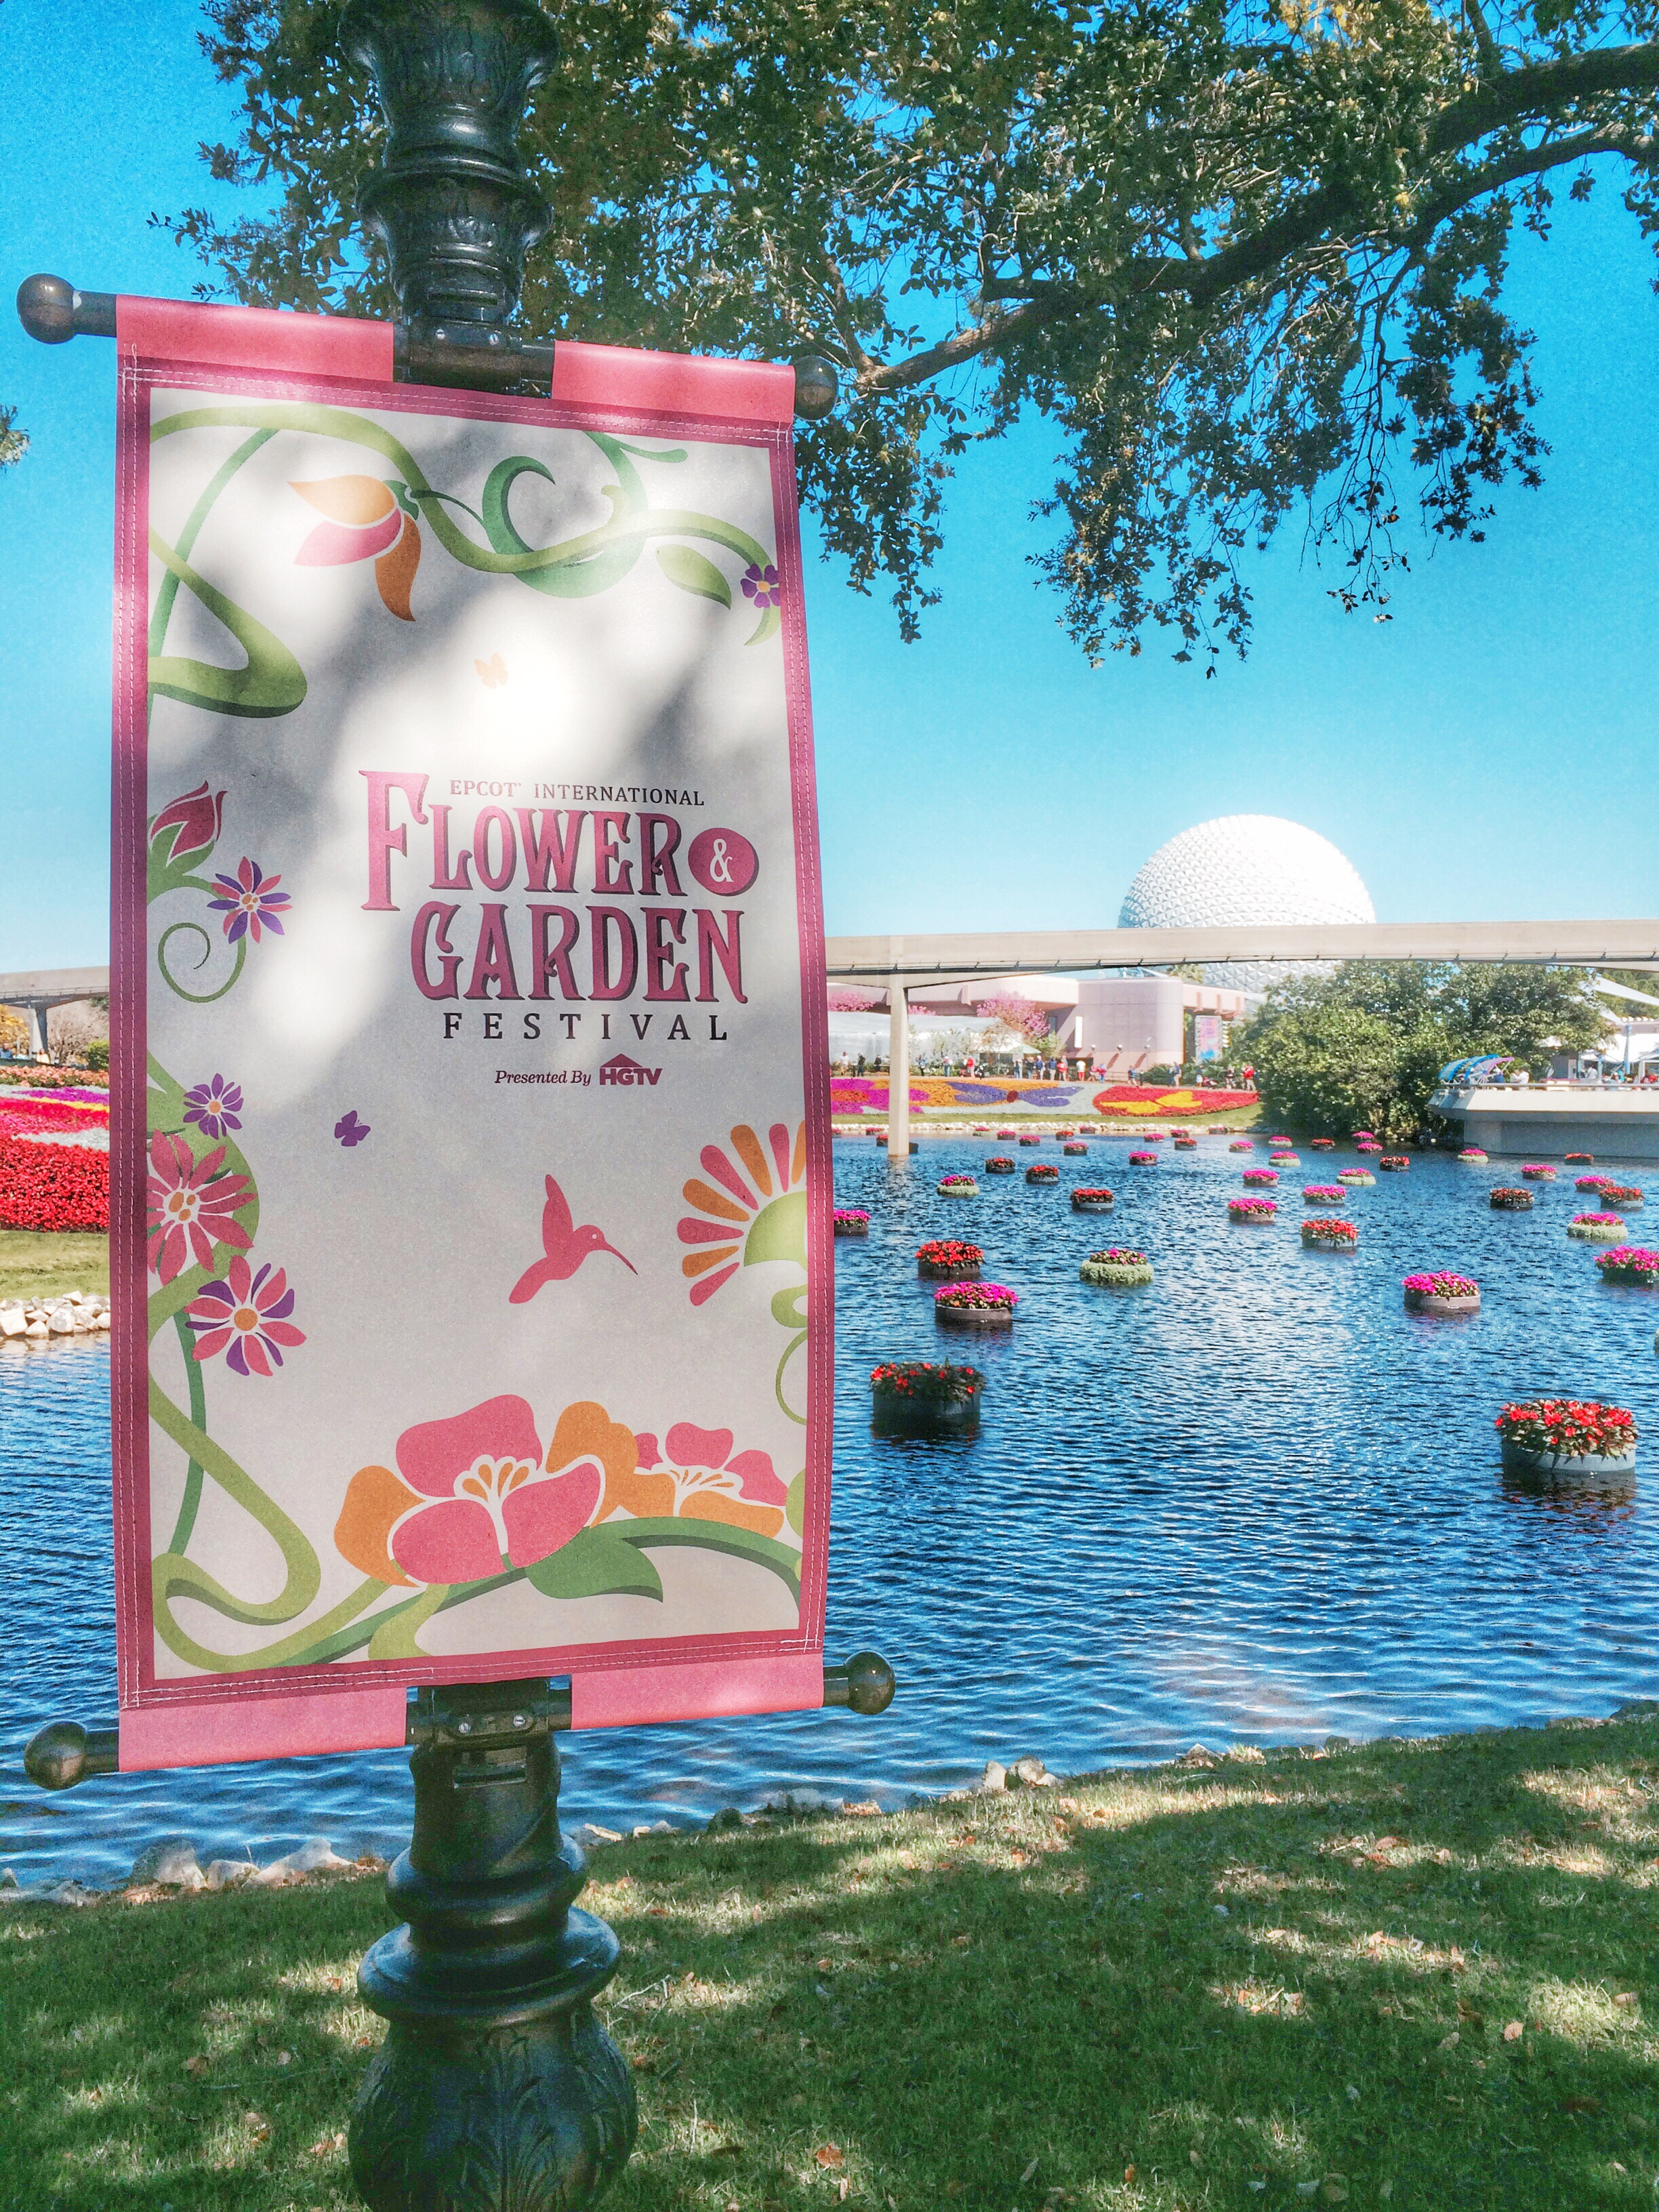 Kitchen Garden International 2015 Epcot International Flower And Garden Festival Outdoor